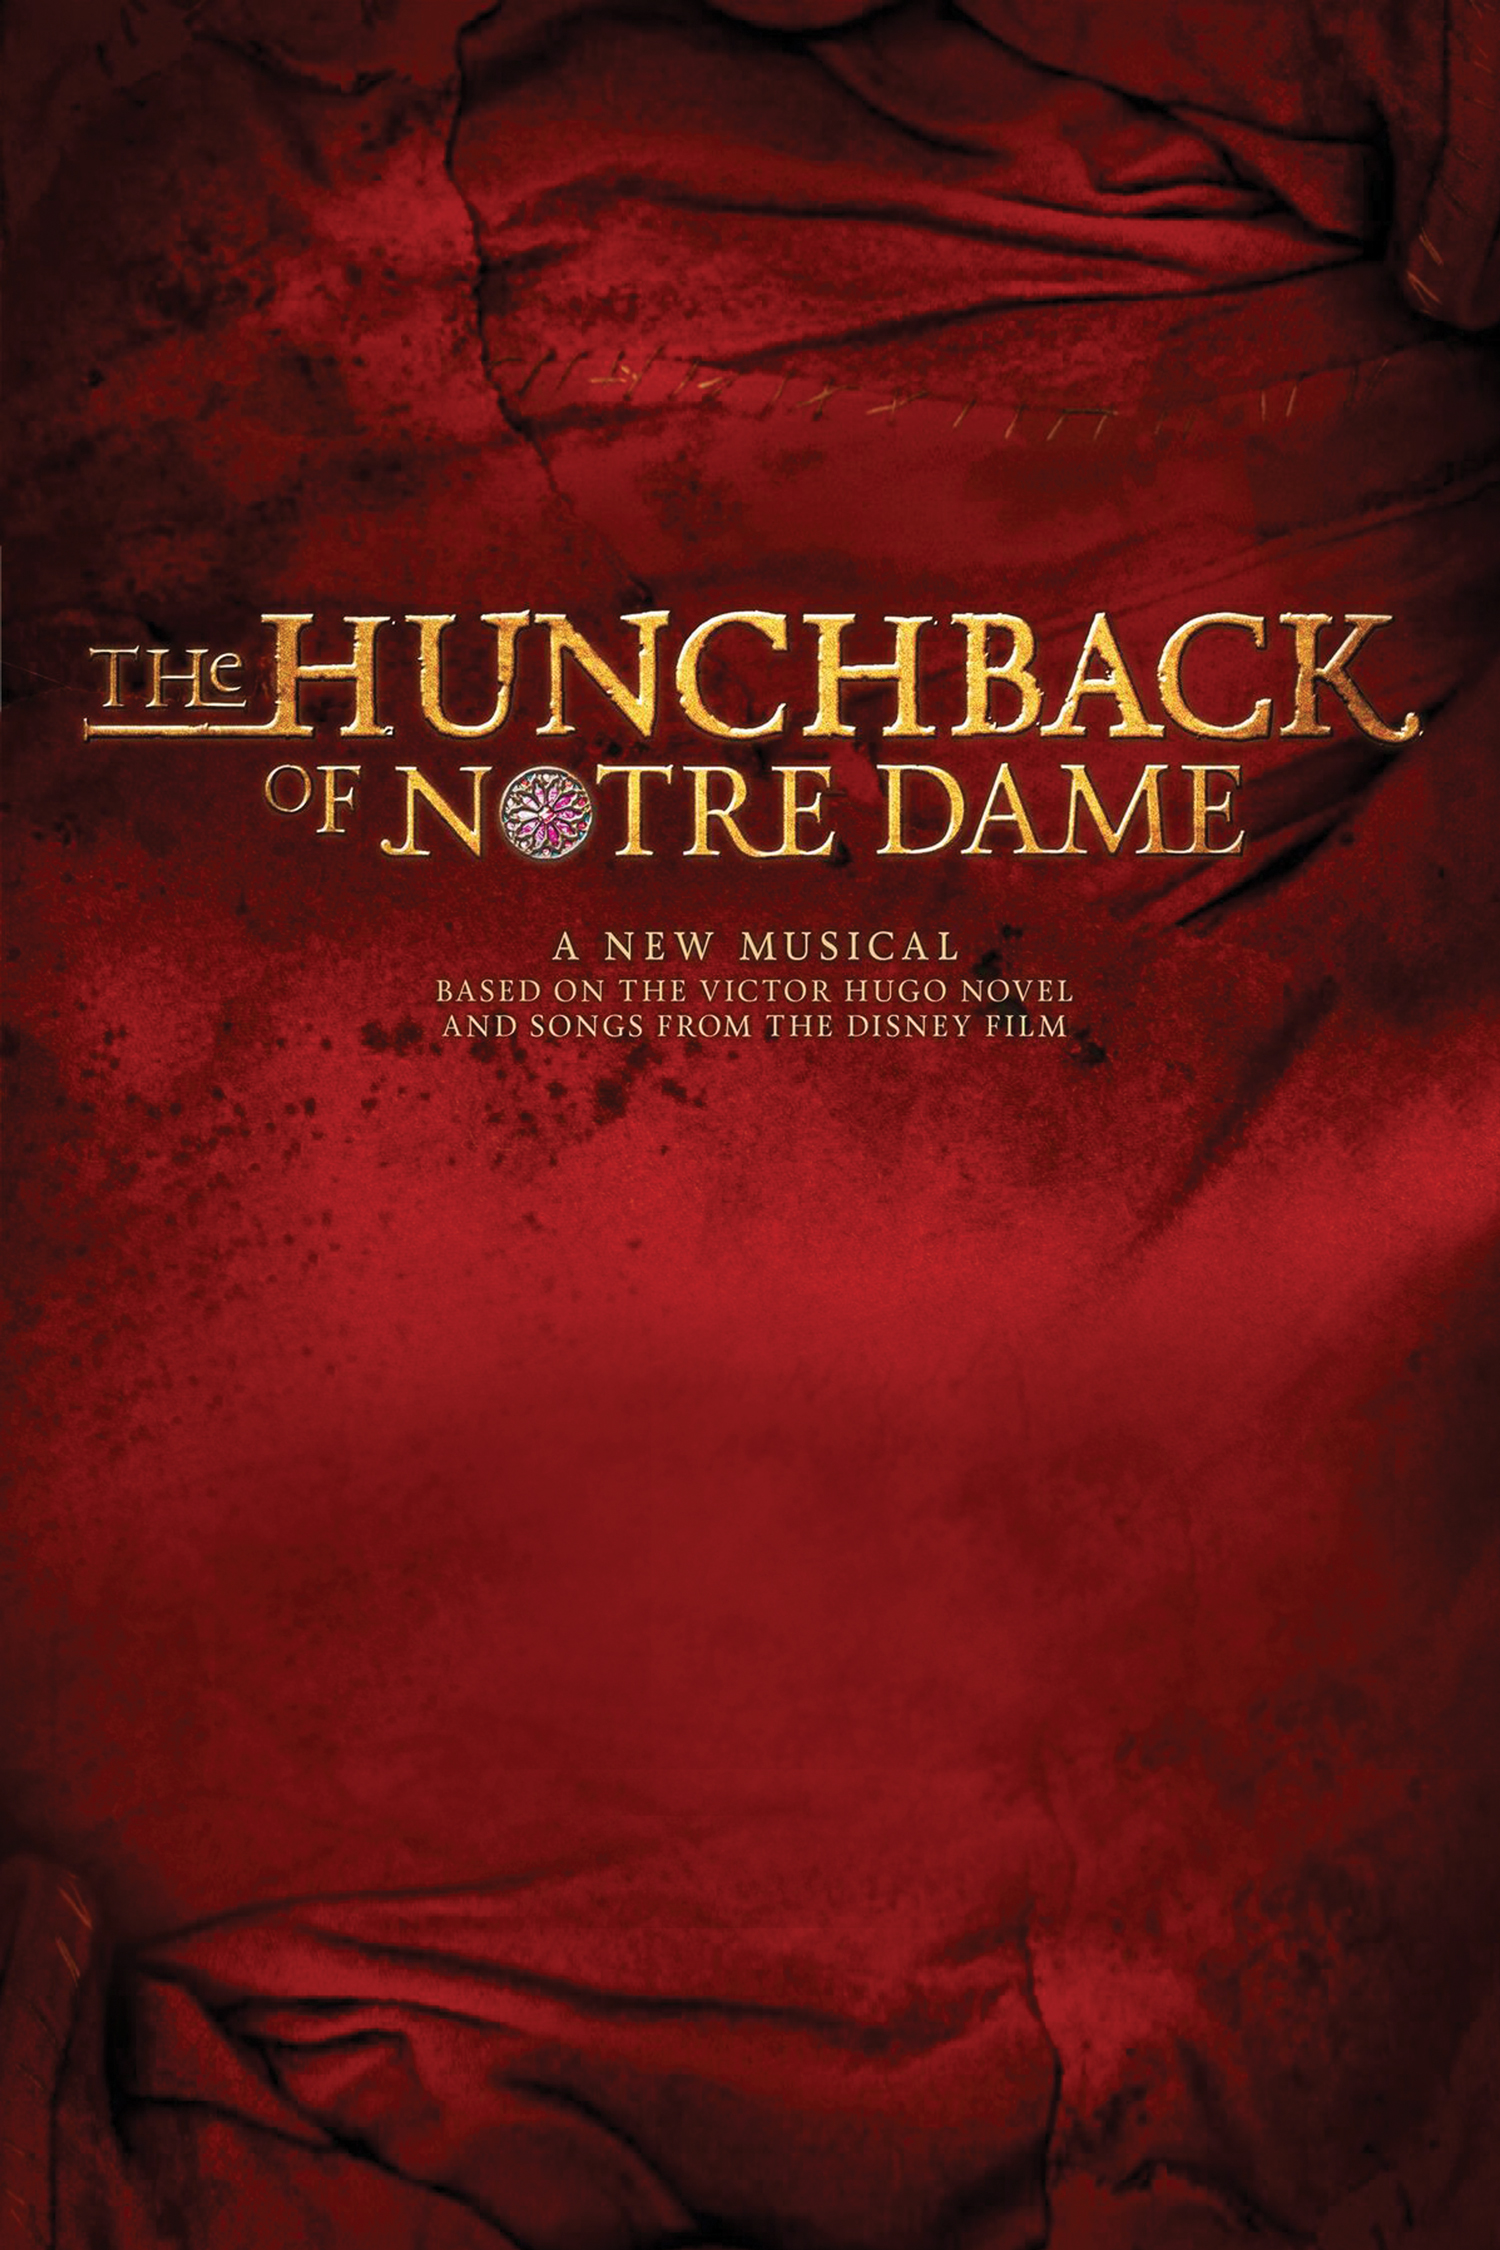 essay about the hunchback of notre dame Look through the hunchback of notre dame summary samples prepared by our writers.